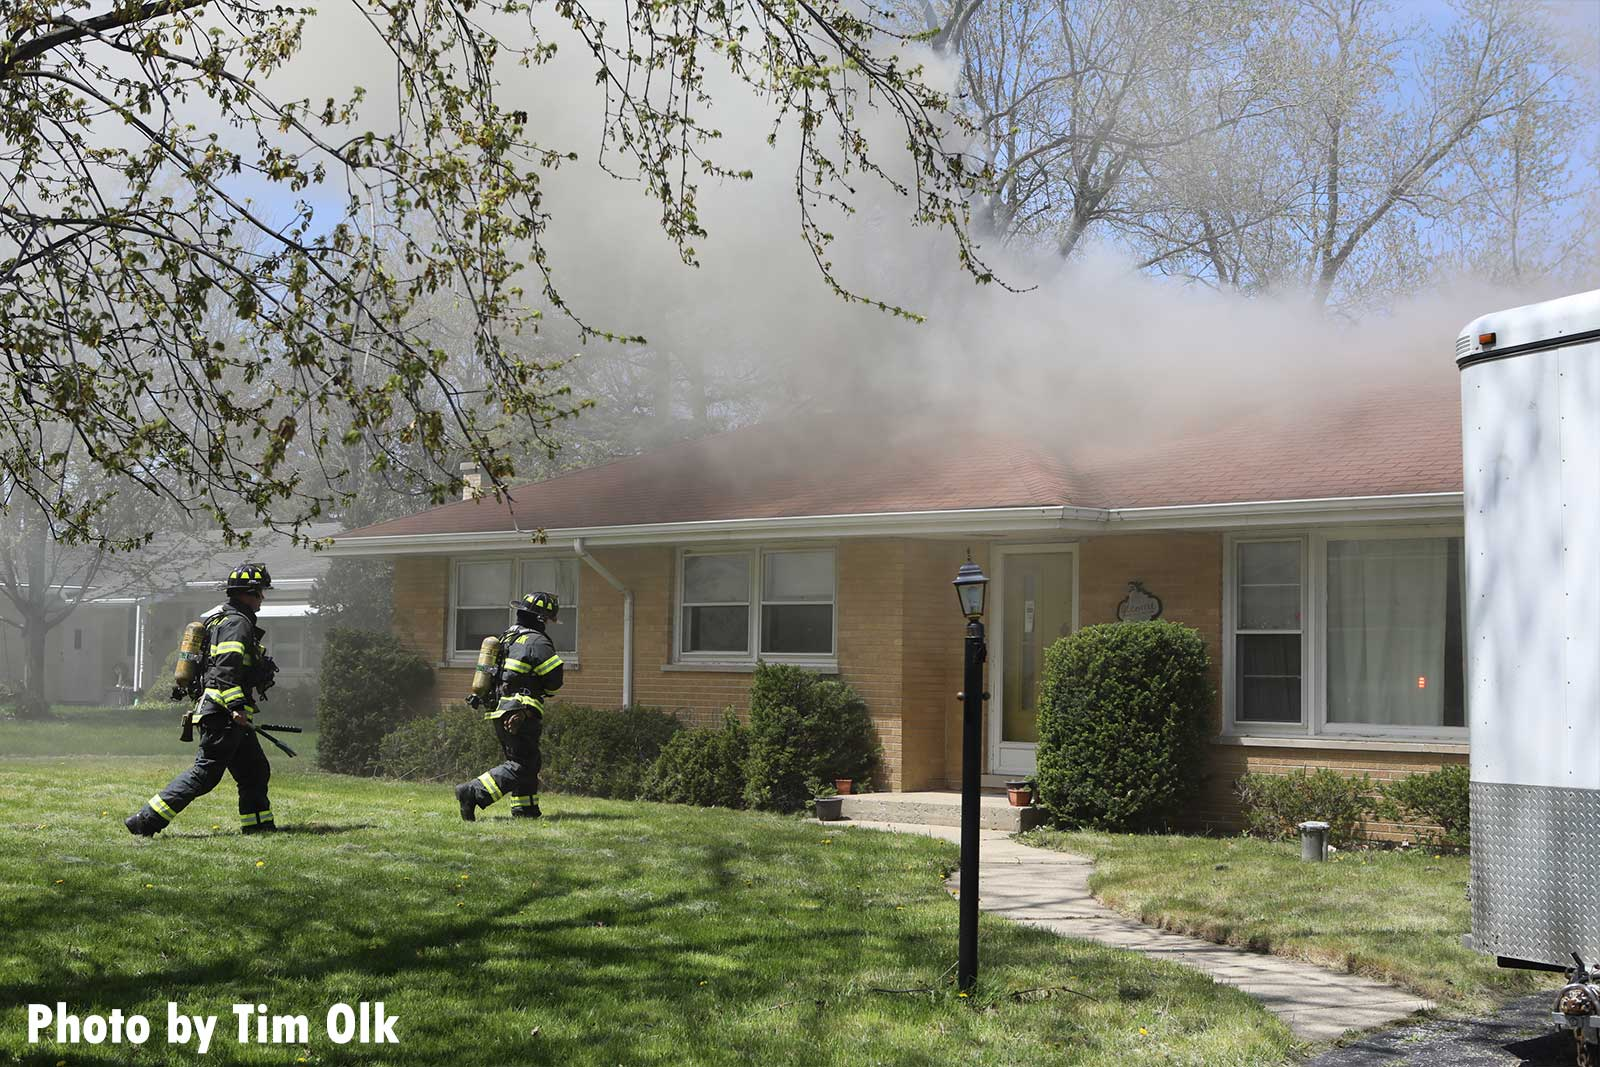 Firefighters arrive on scene with smoke showing from home